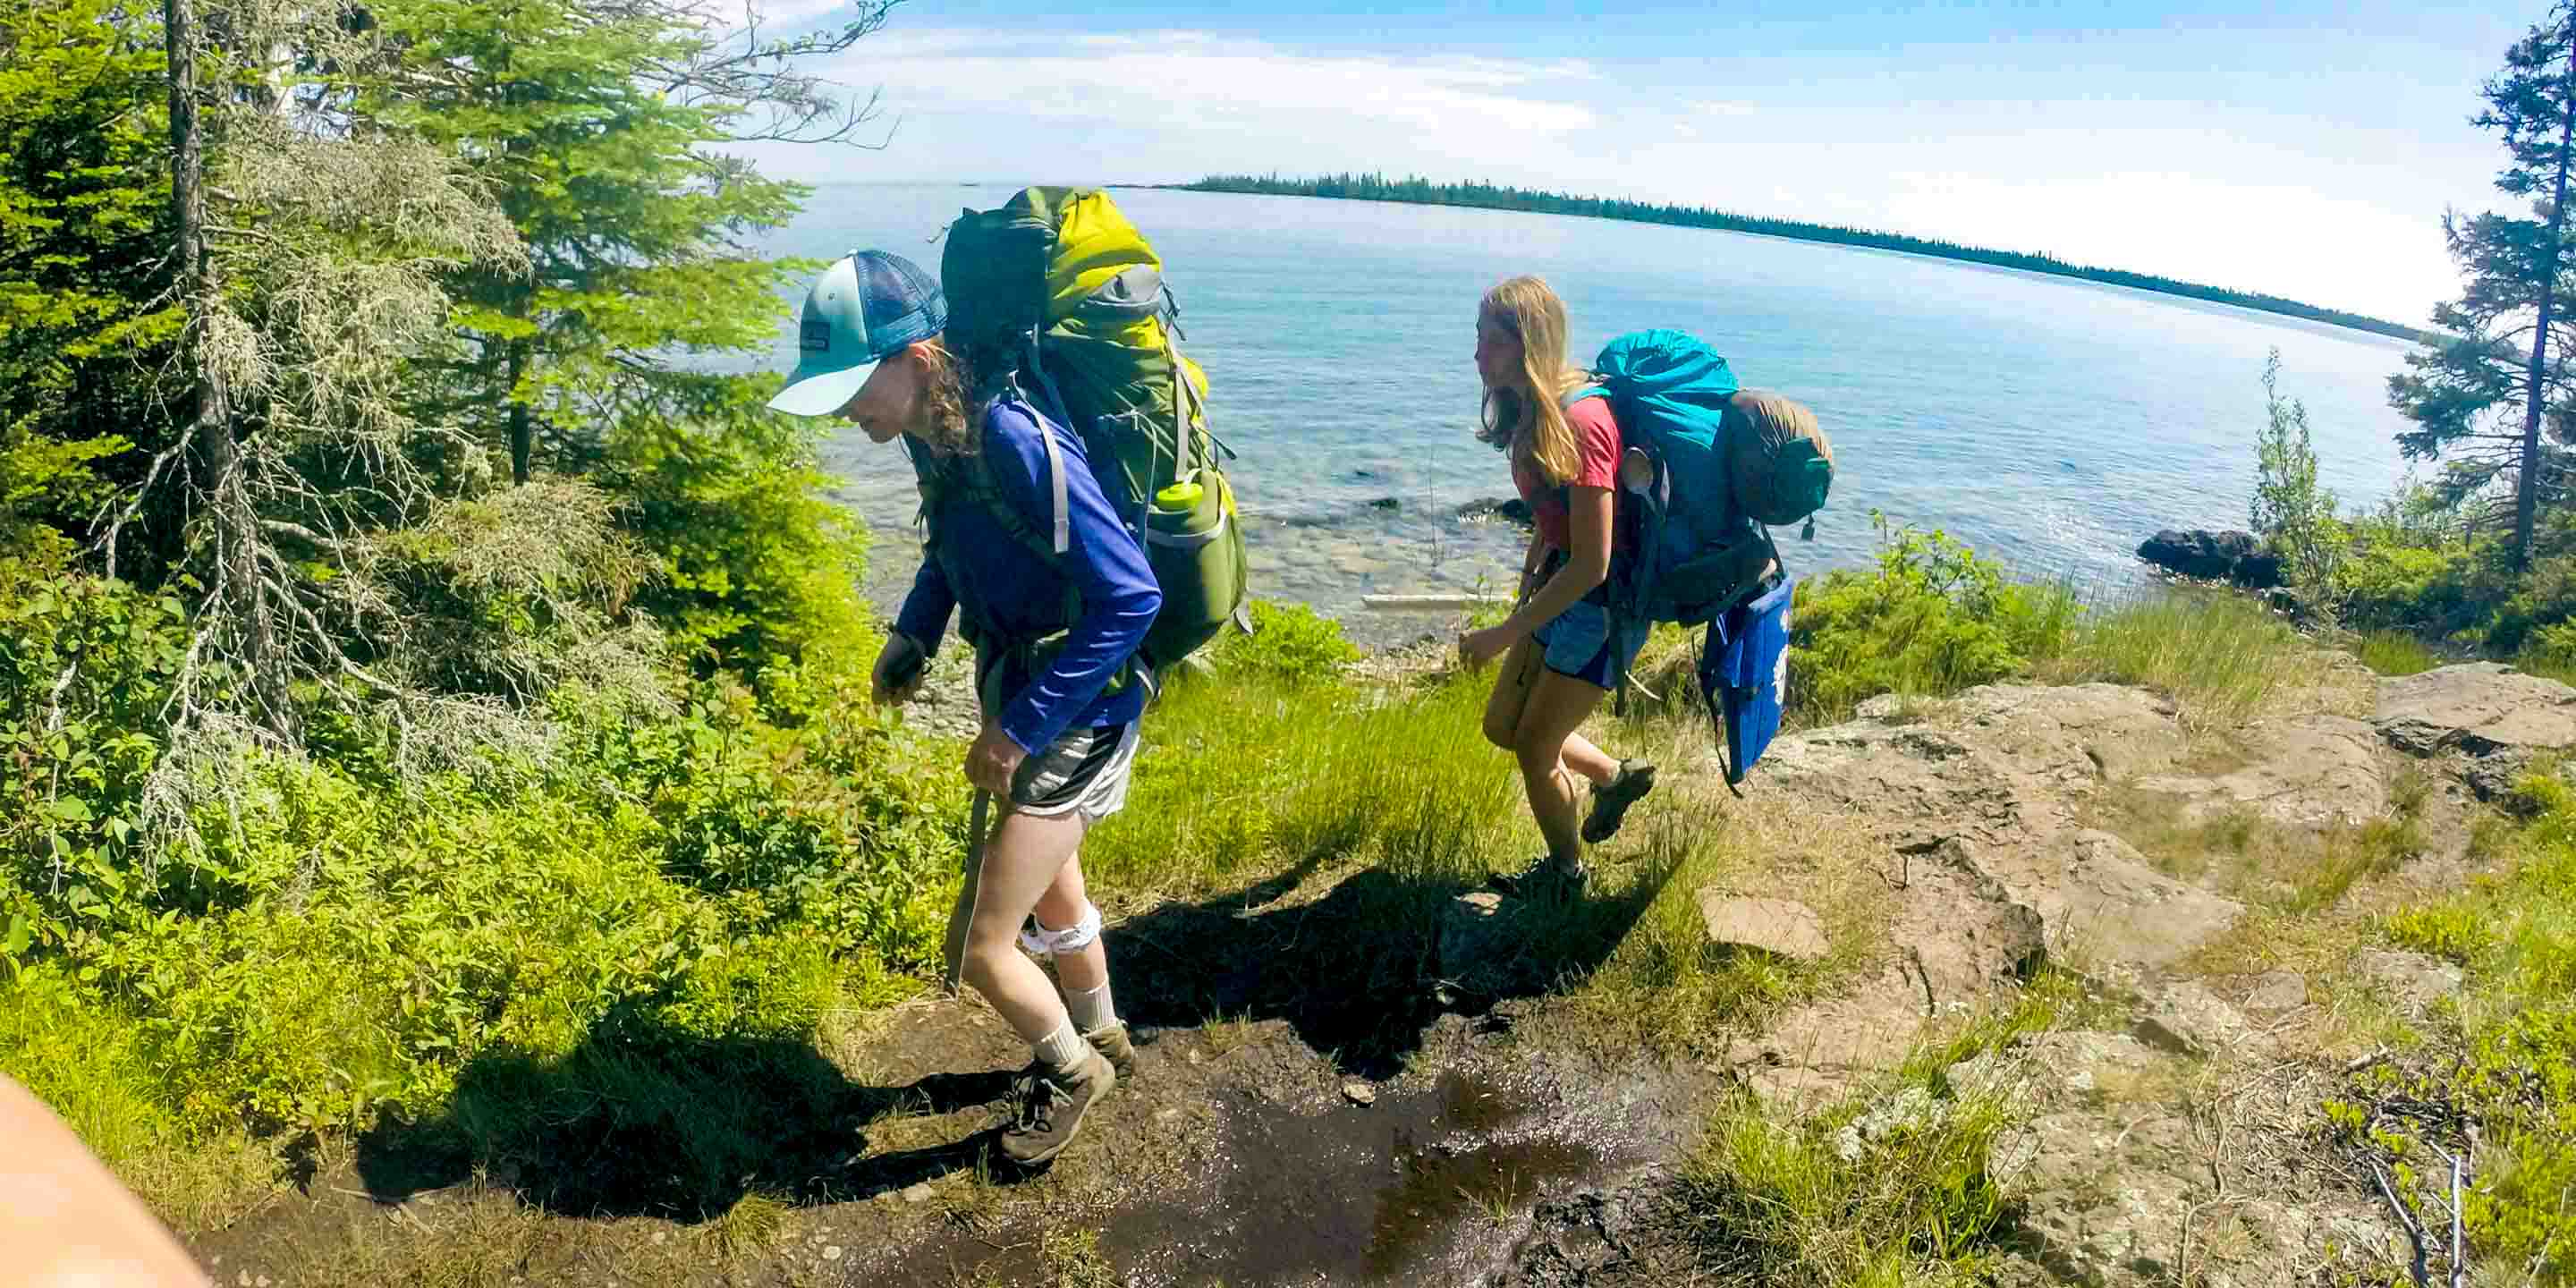 Girls backpack along lakeshore during camp trip